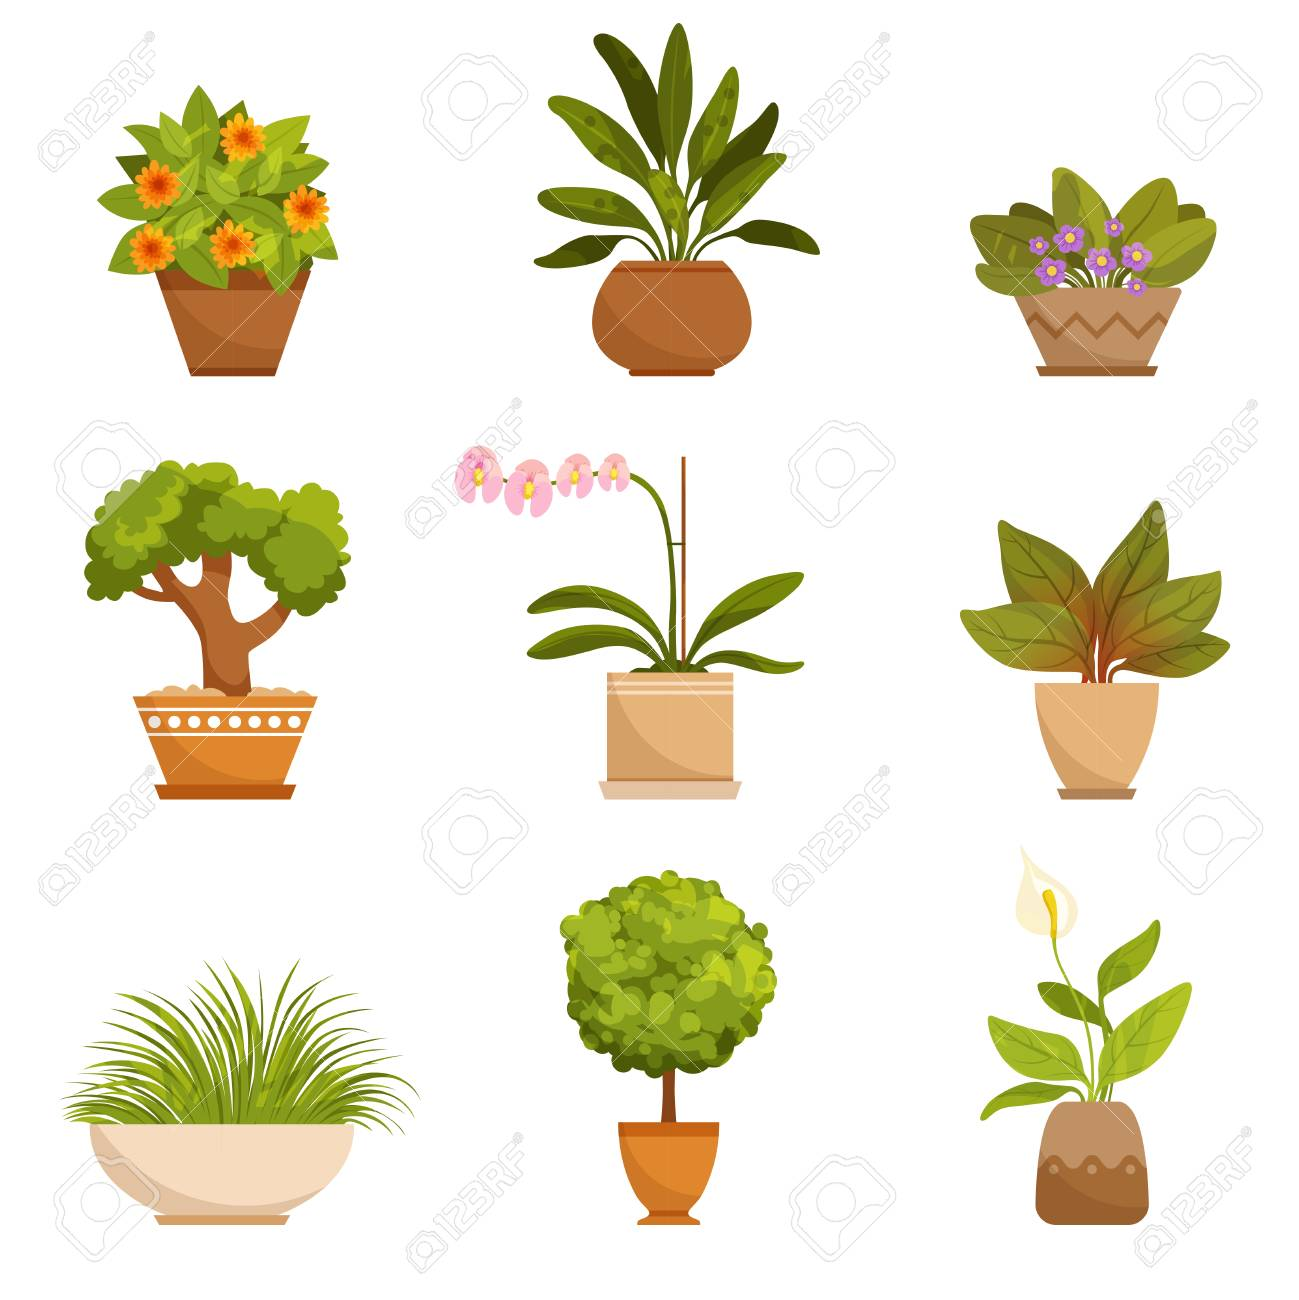 House Plants Illustrations In Cartoon Style Royalty Free Cliparts Vectors And Stock Illustration Image 92274165